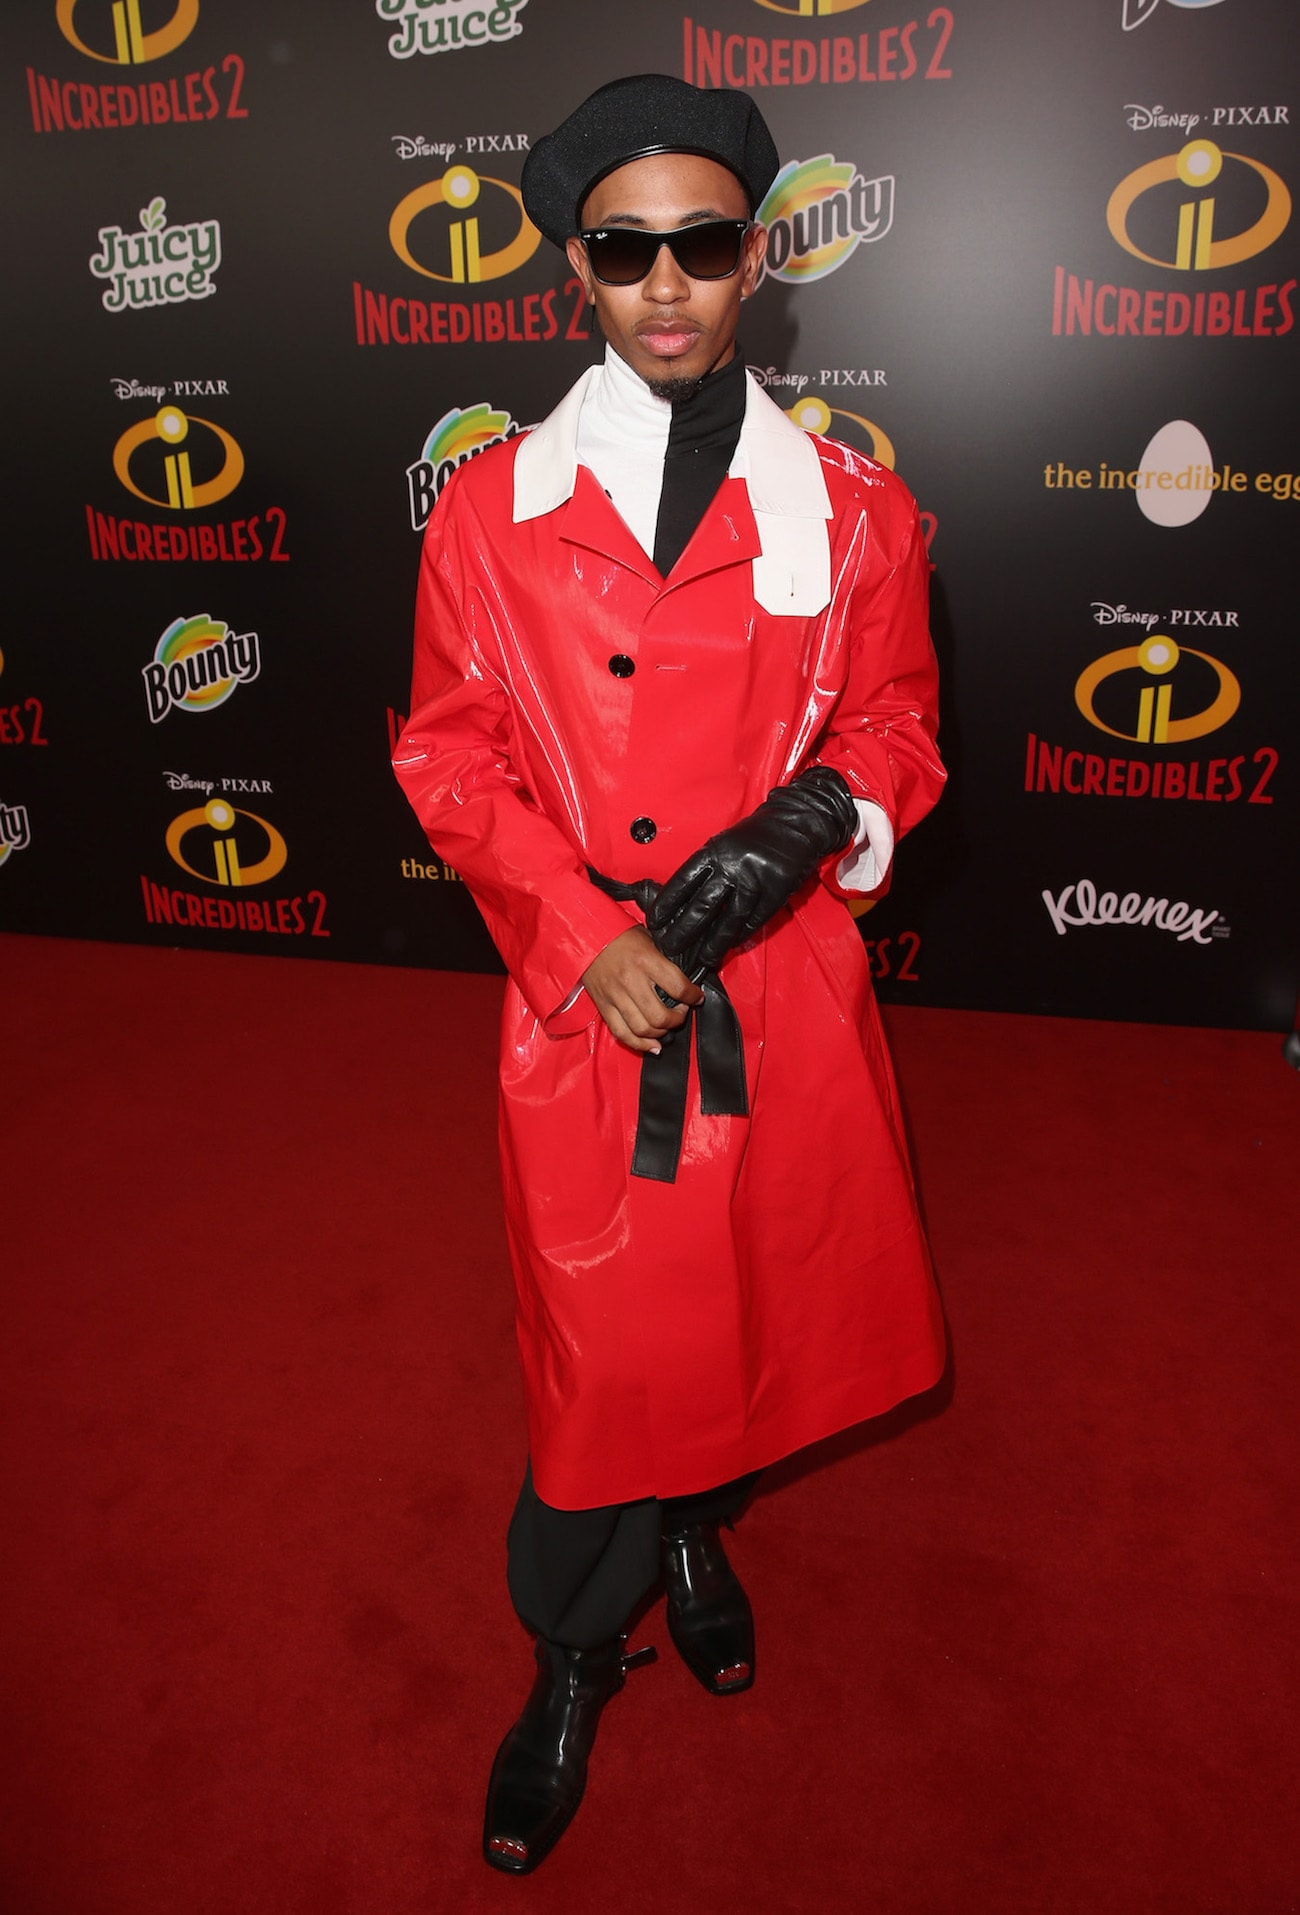 Kalen Allen posing for a picture on the red carpet